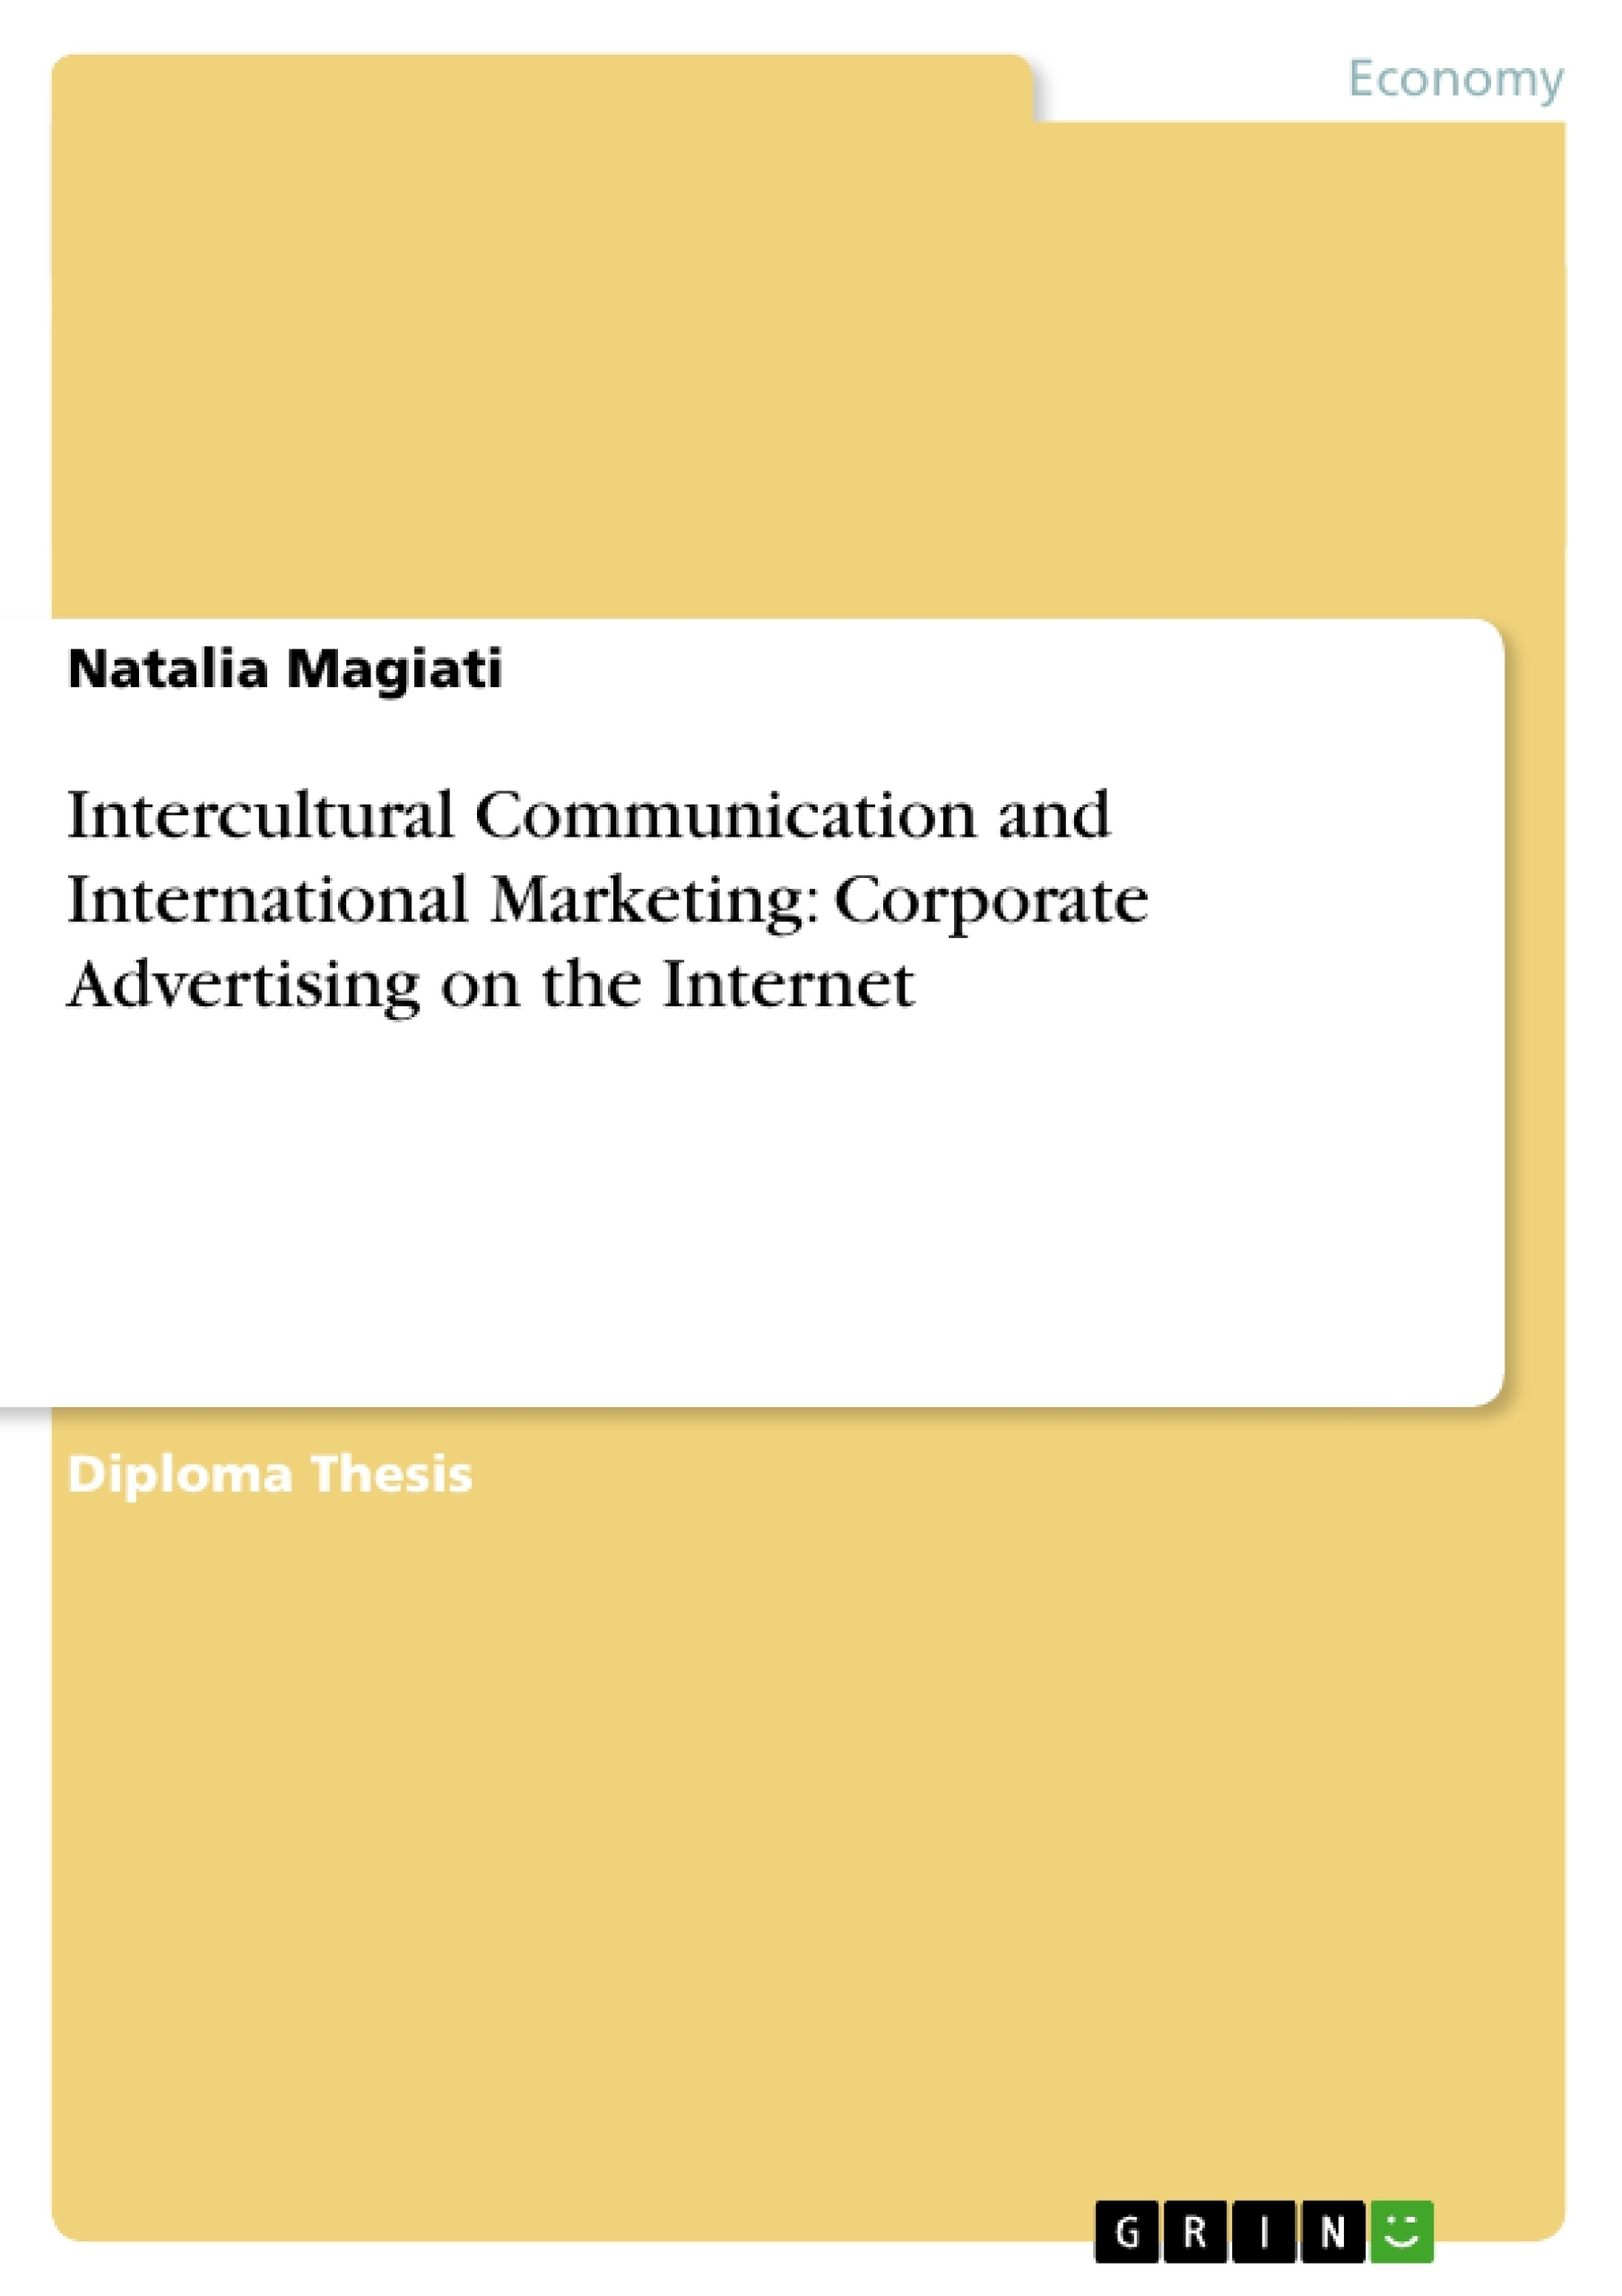 Title: Intercultural Communication and International Marketing: Corporate Advertising on the Internet